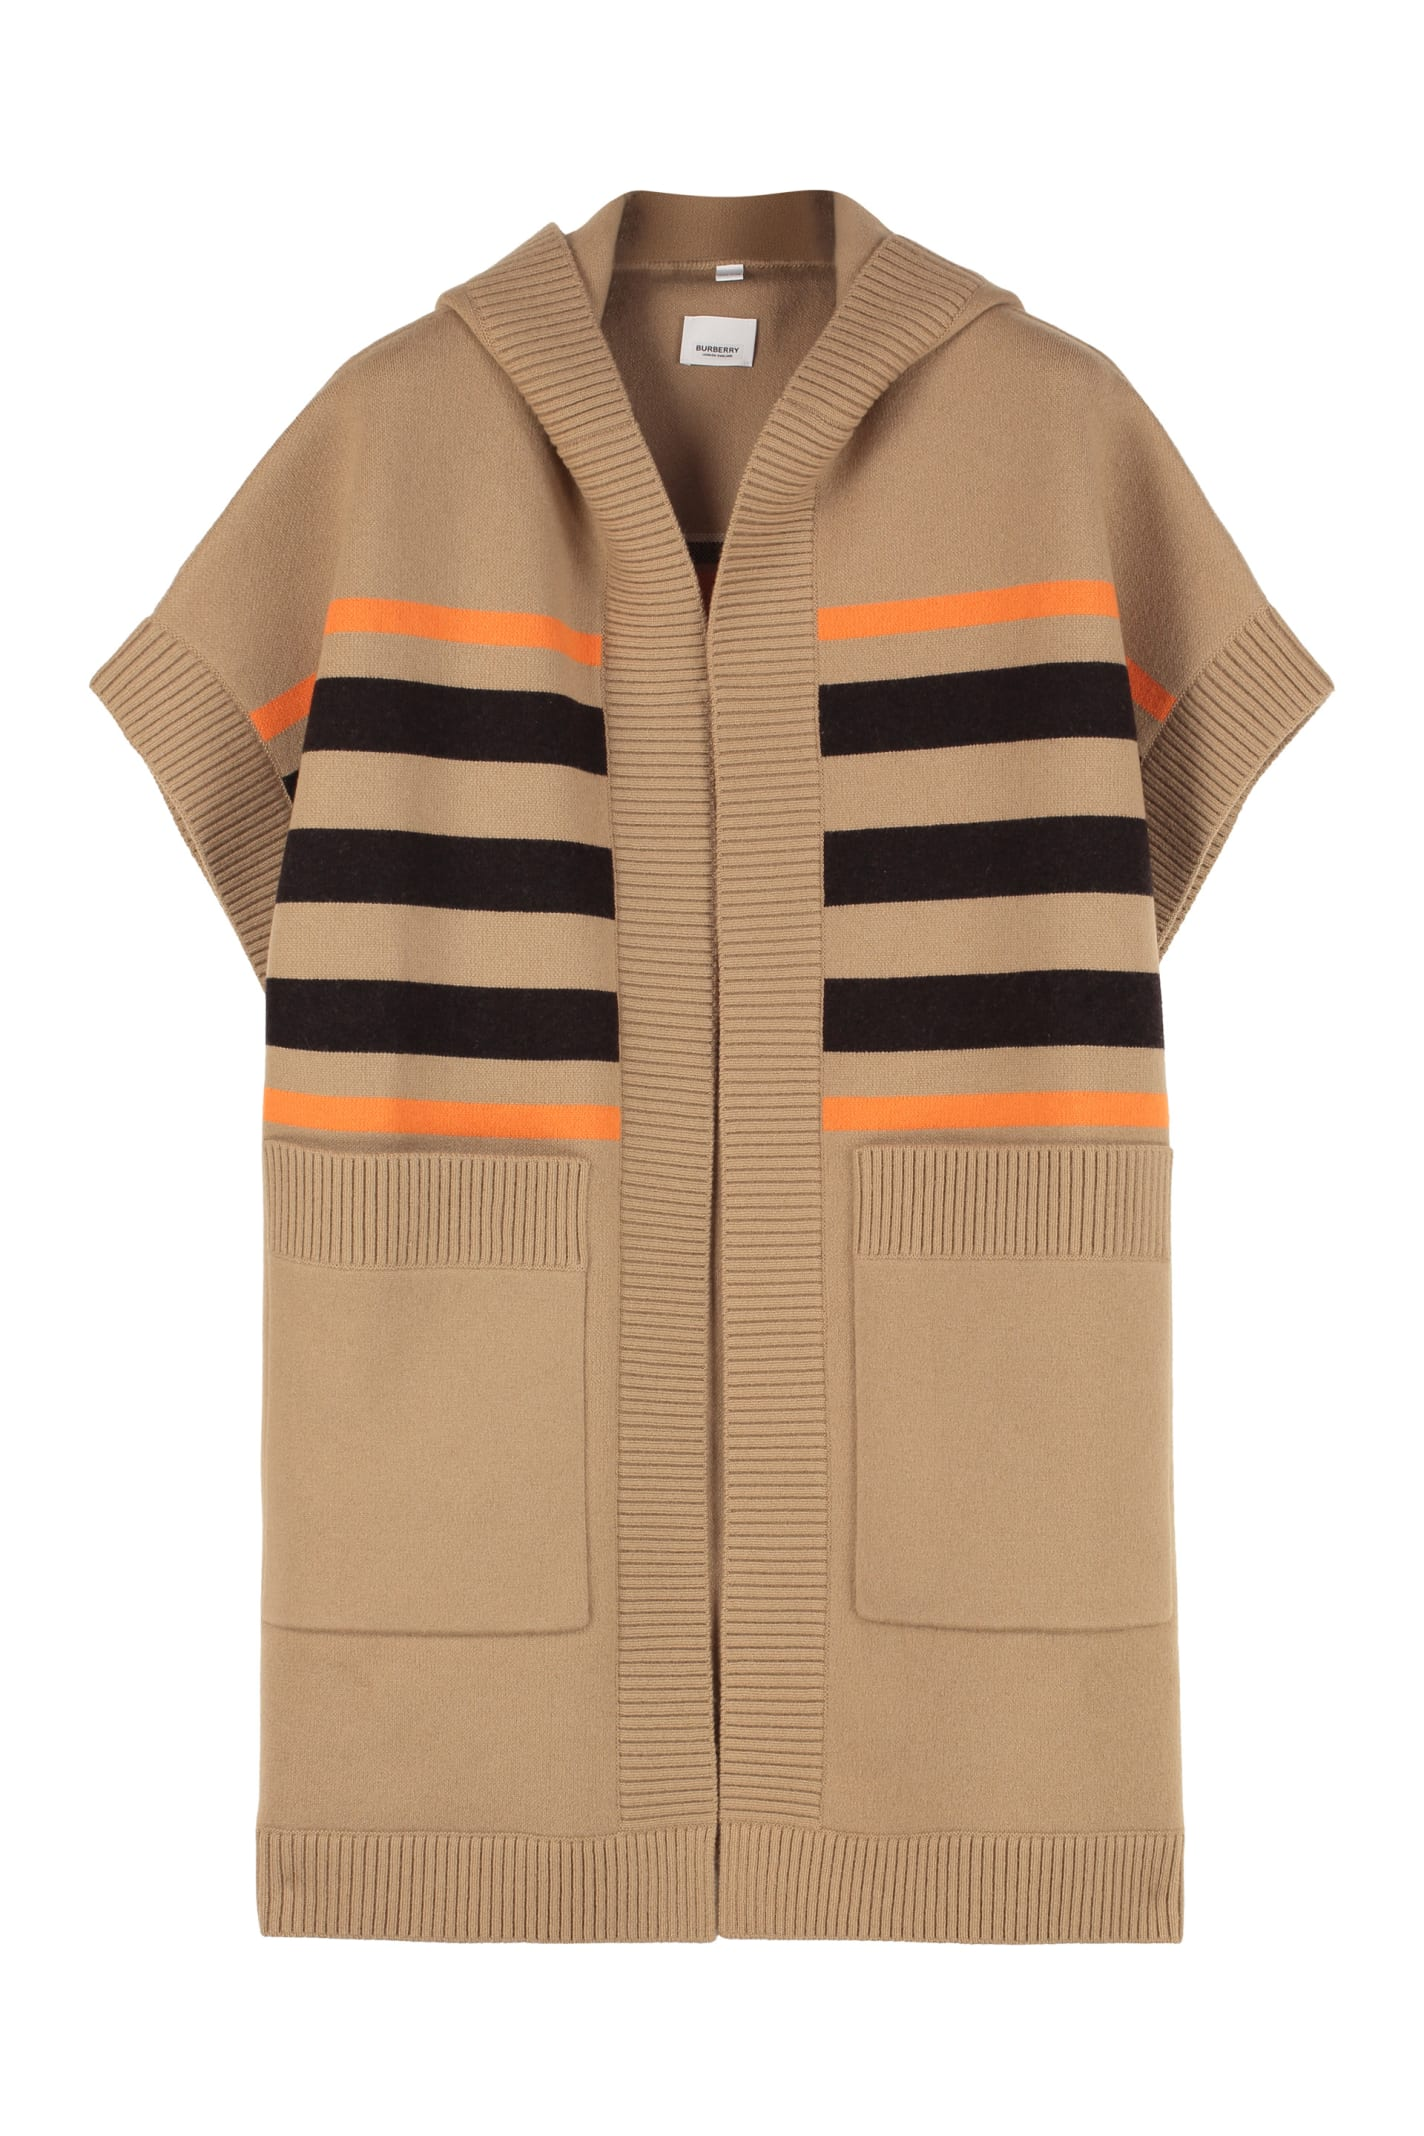 Photo of  Burberry Knitted Cashmere And Wool Cape Coat- shop Burberry jackets online sales